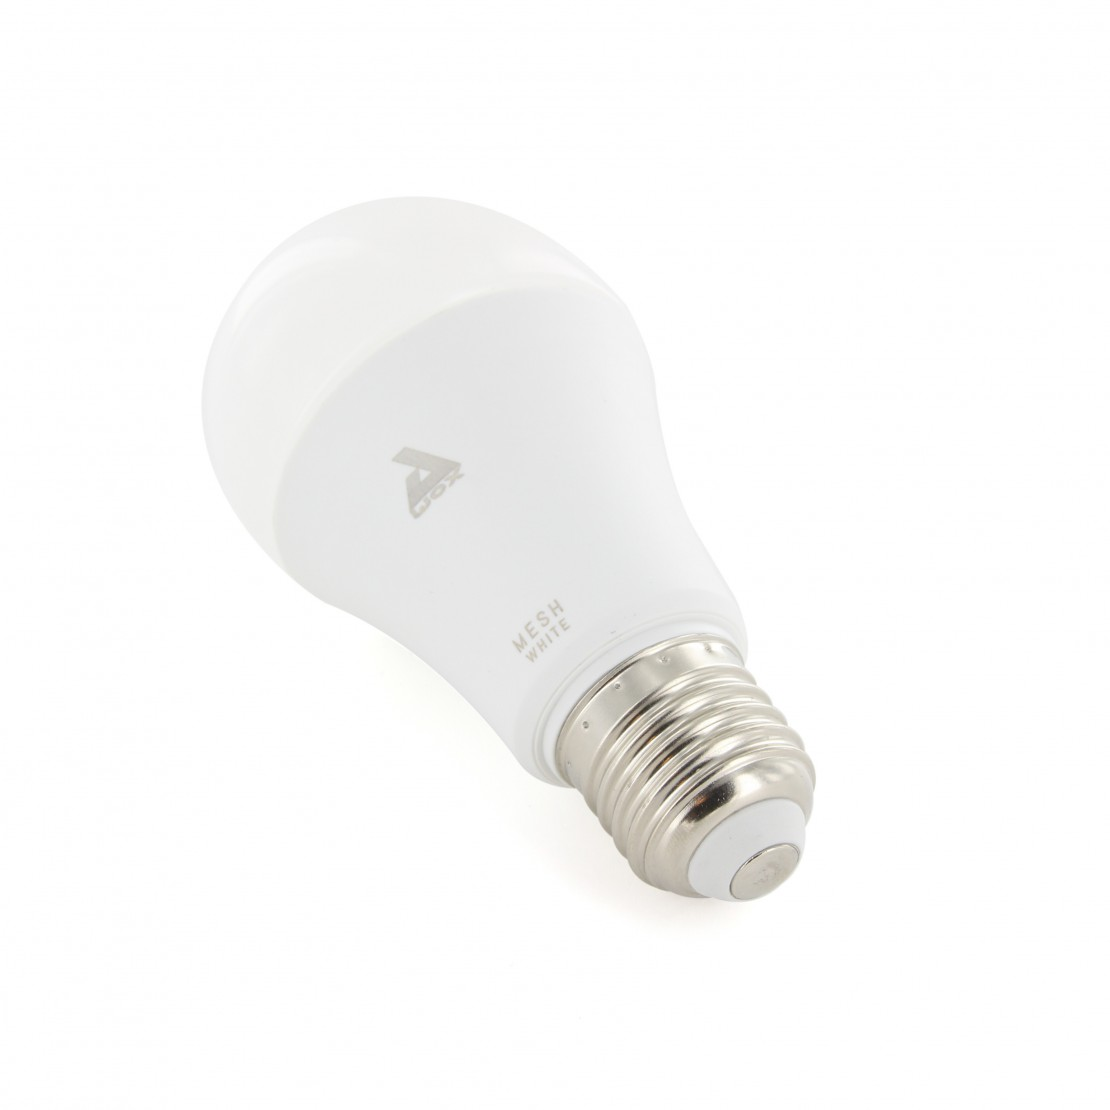 SmartLIGHT - E27 white bulb Bluetooth Mesh